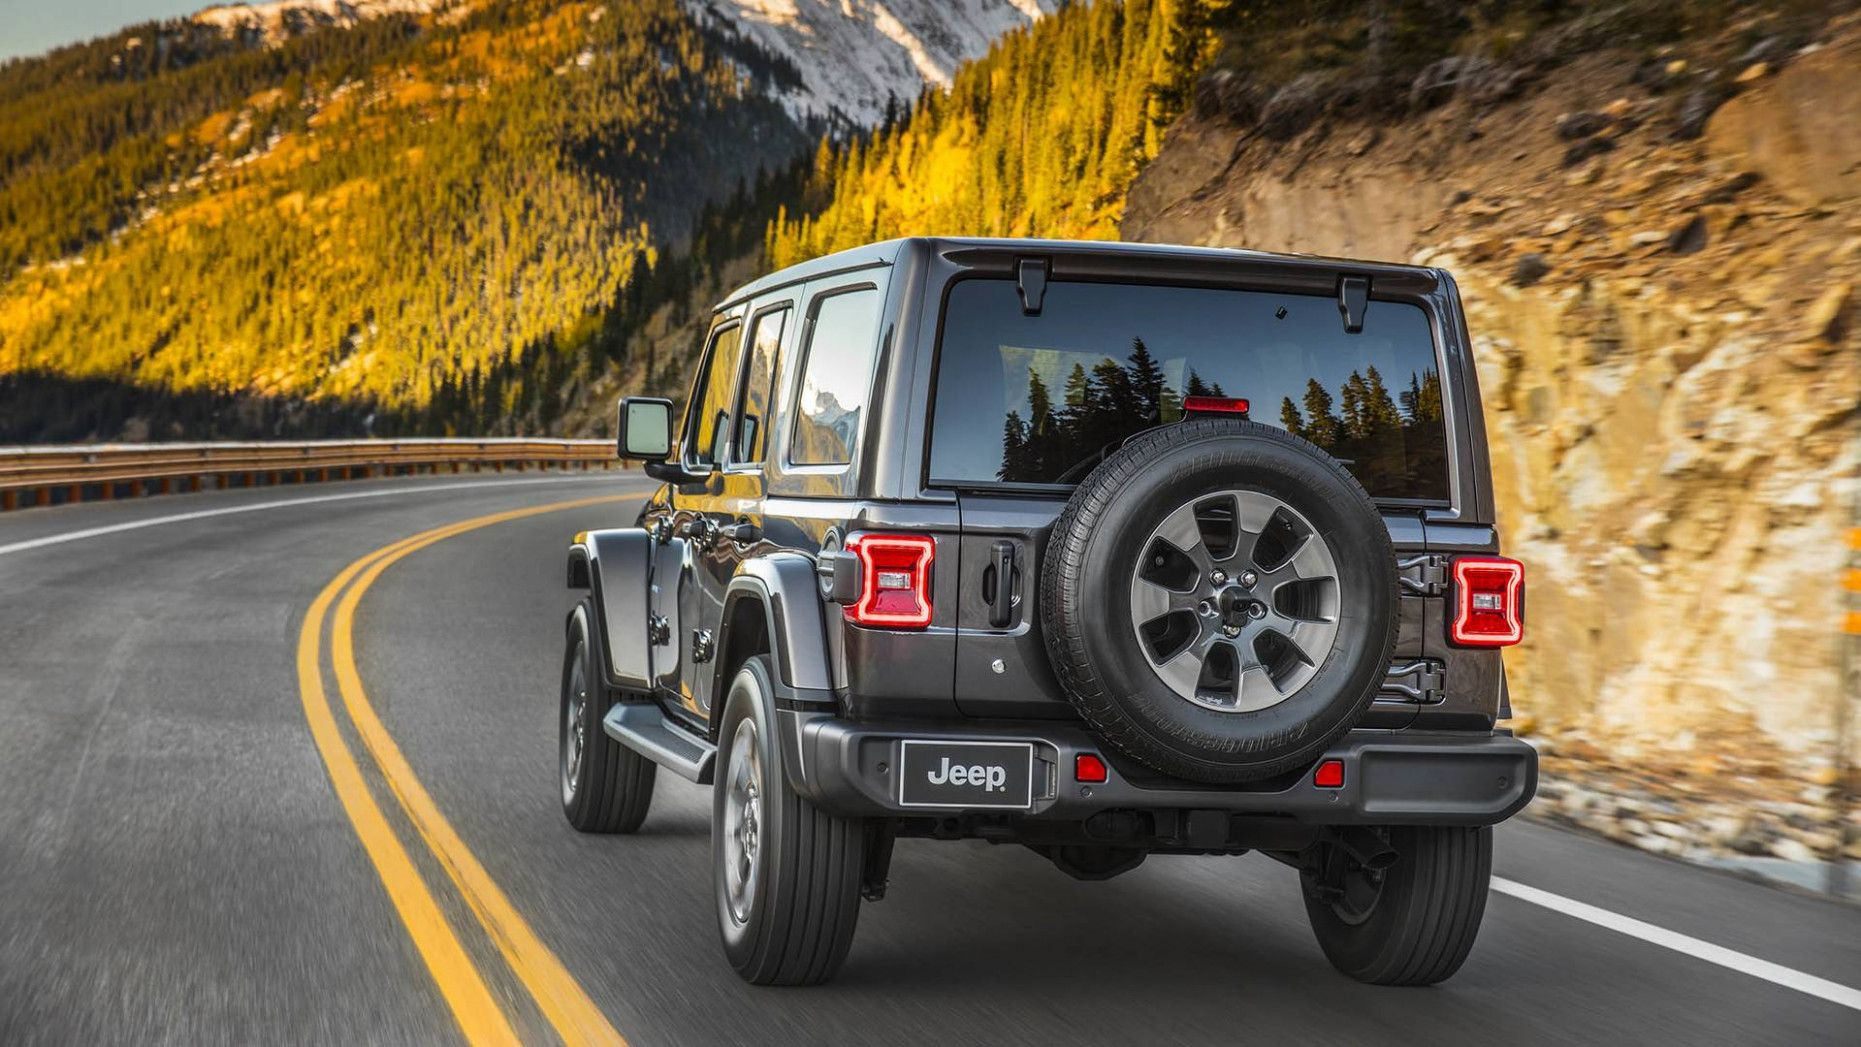 2021 The Jeep Wrangler New Model And Performance In 2020 Jeep